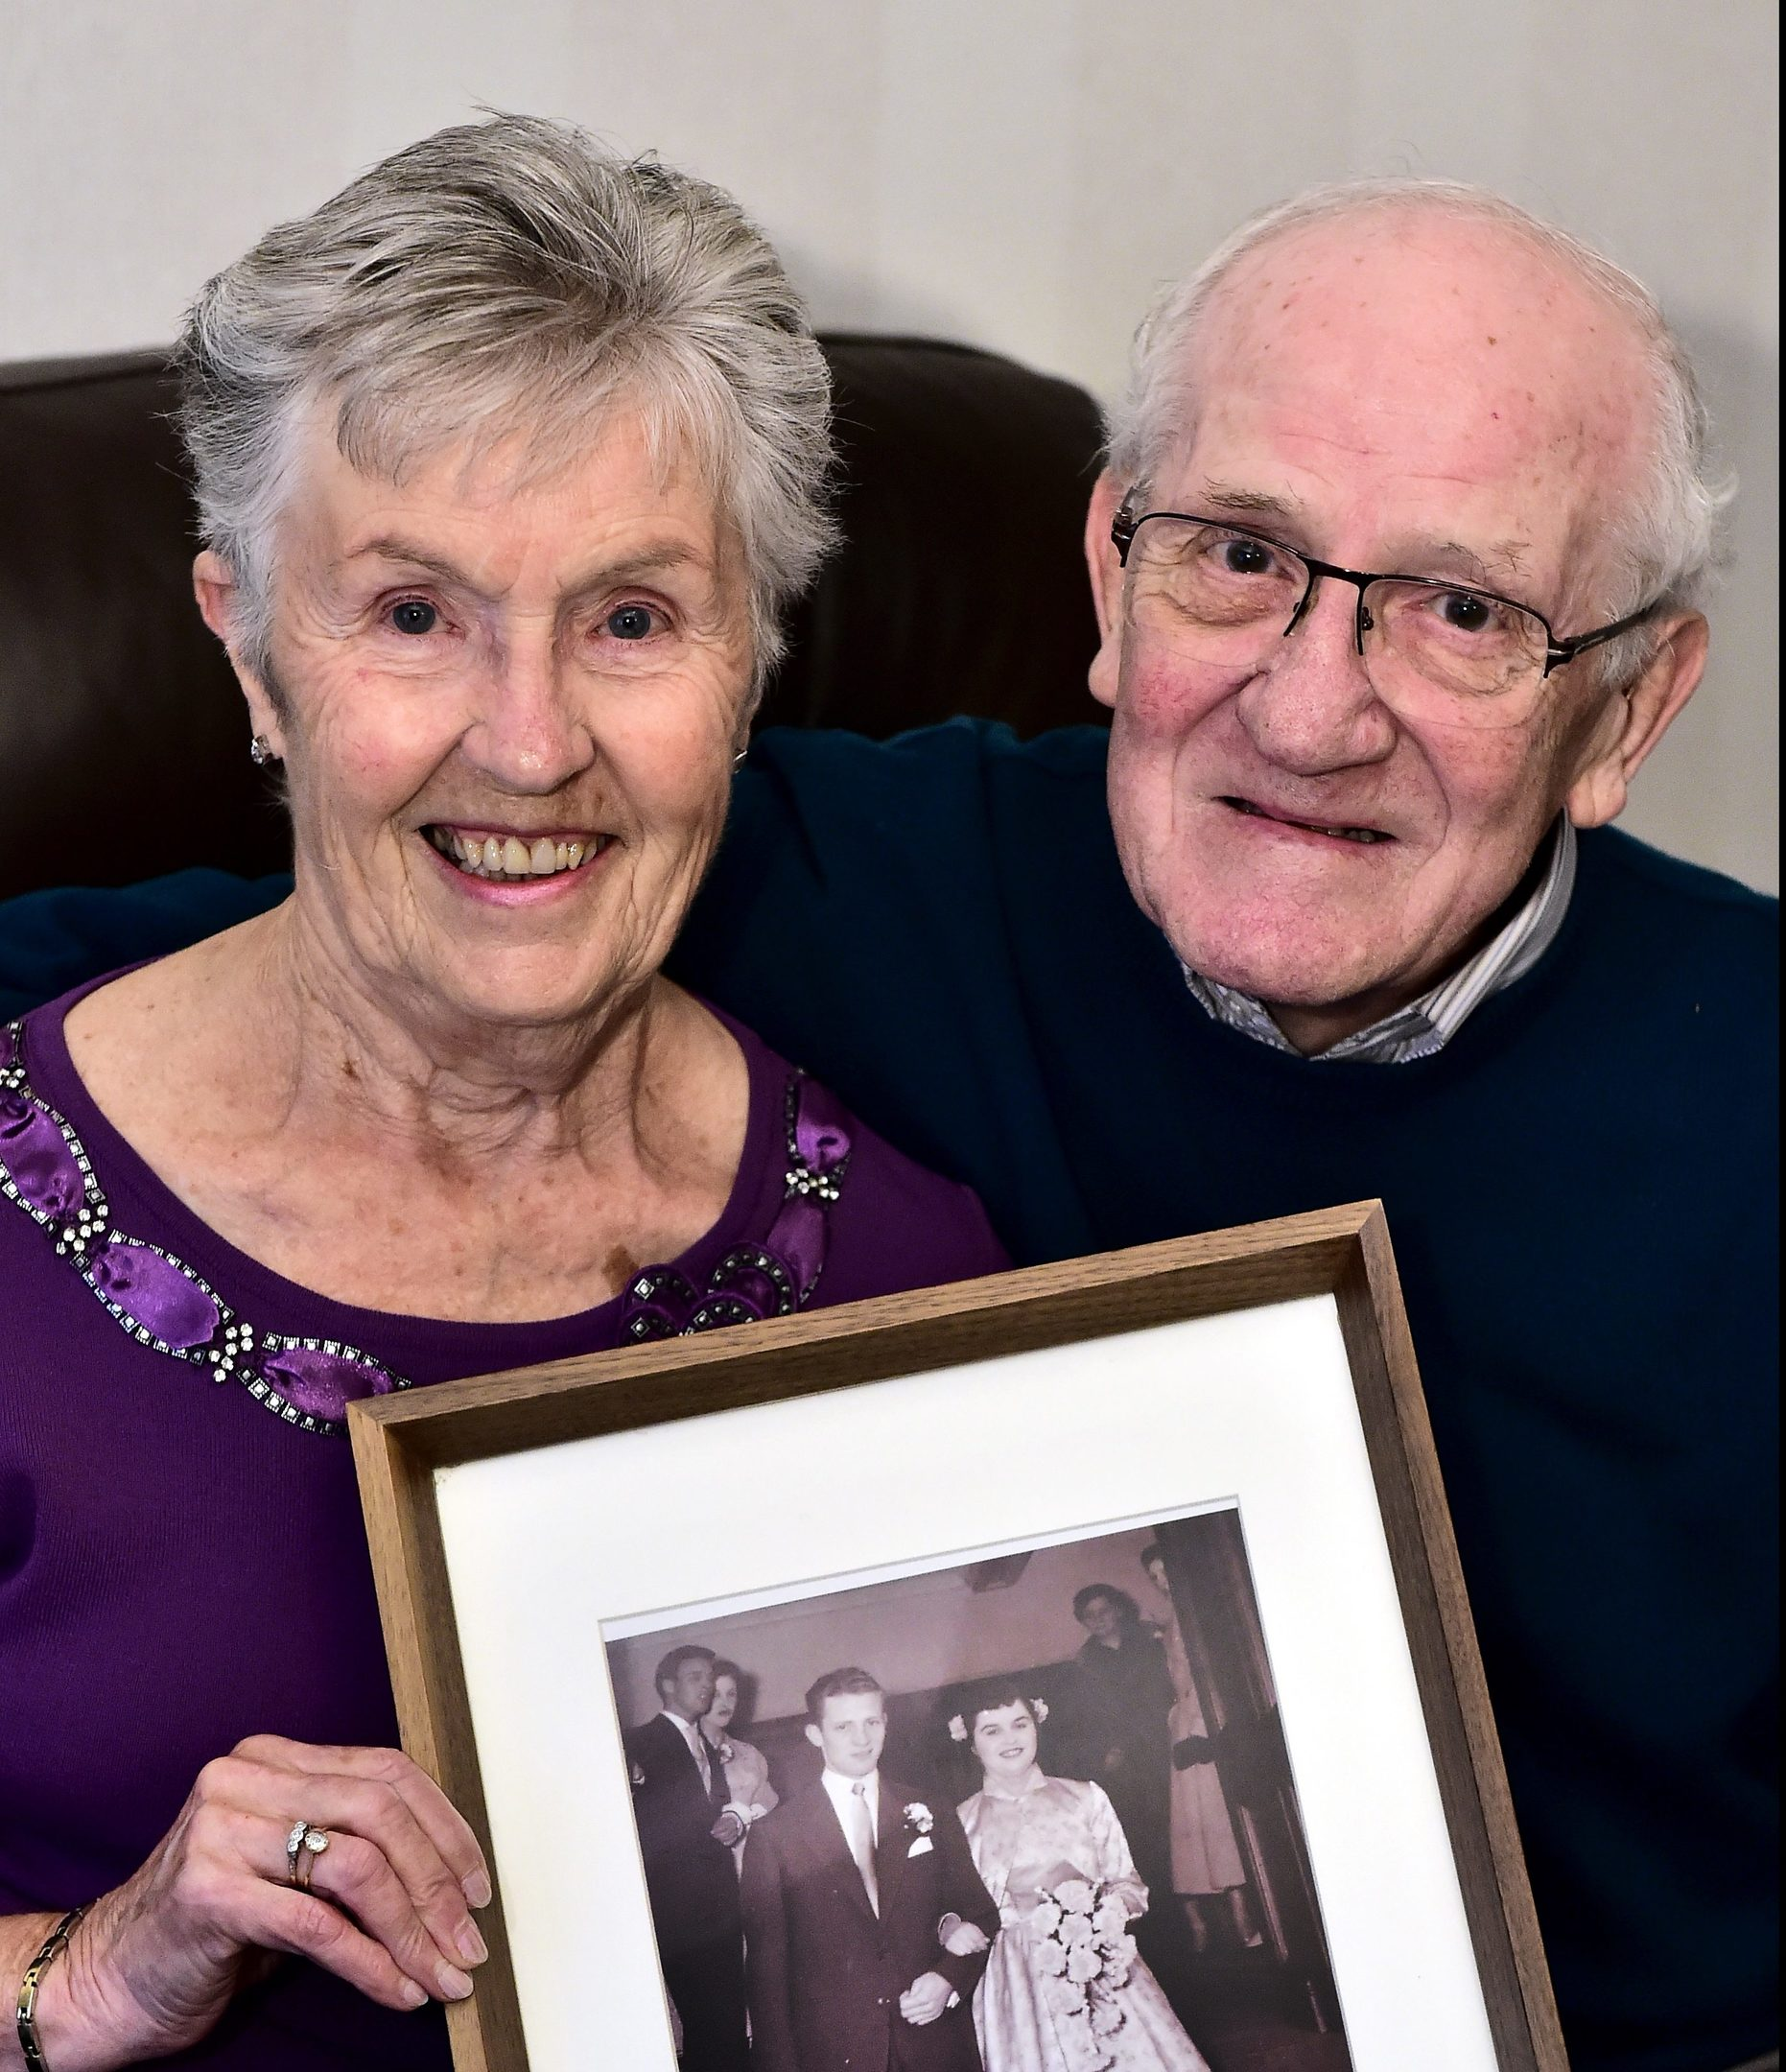 Margaret and Donald Smith of Bridge of Don, celebrated their 60th wedding anniversary